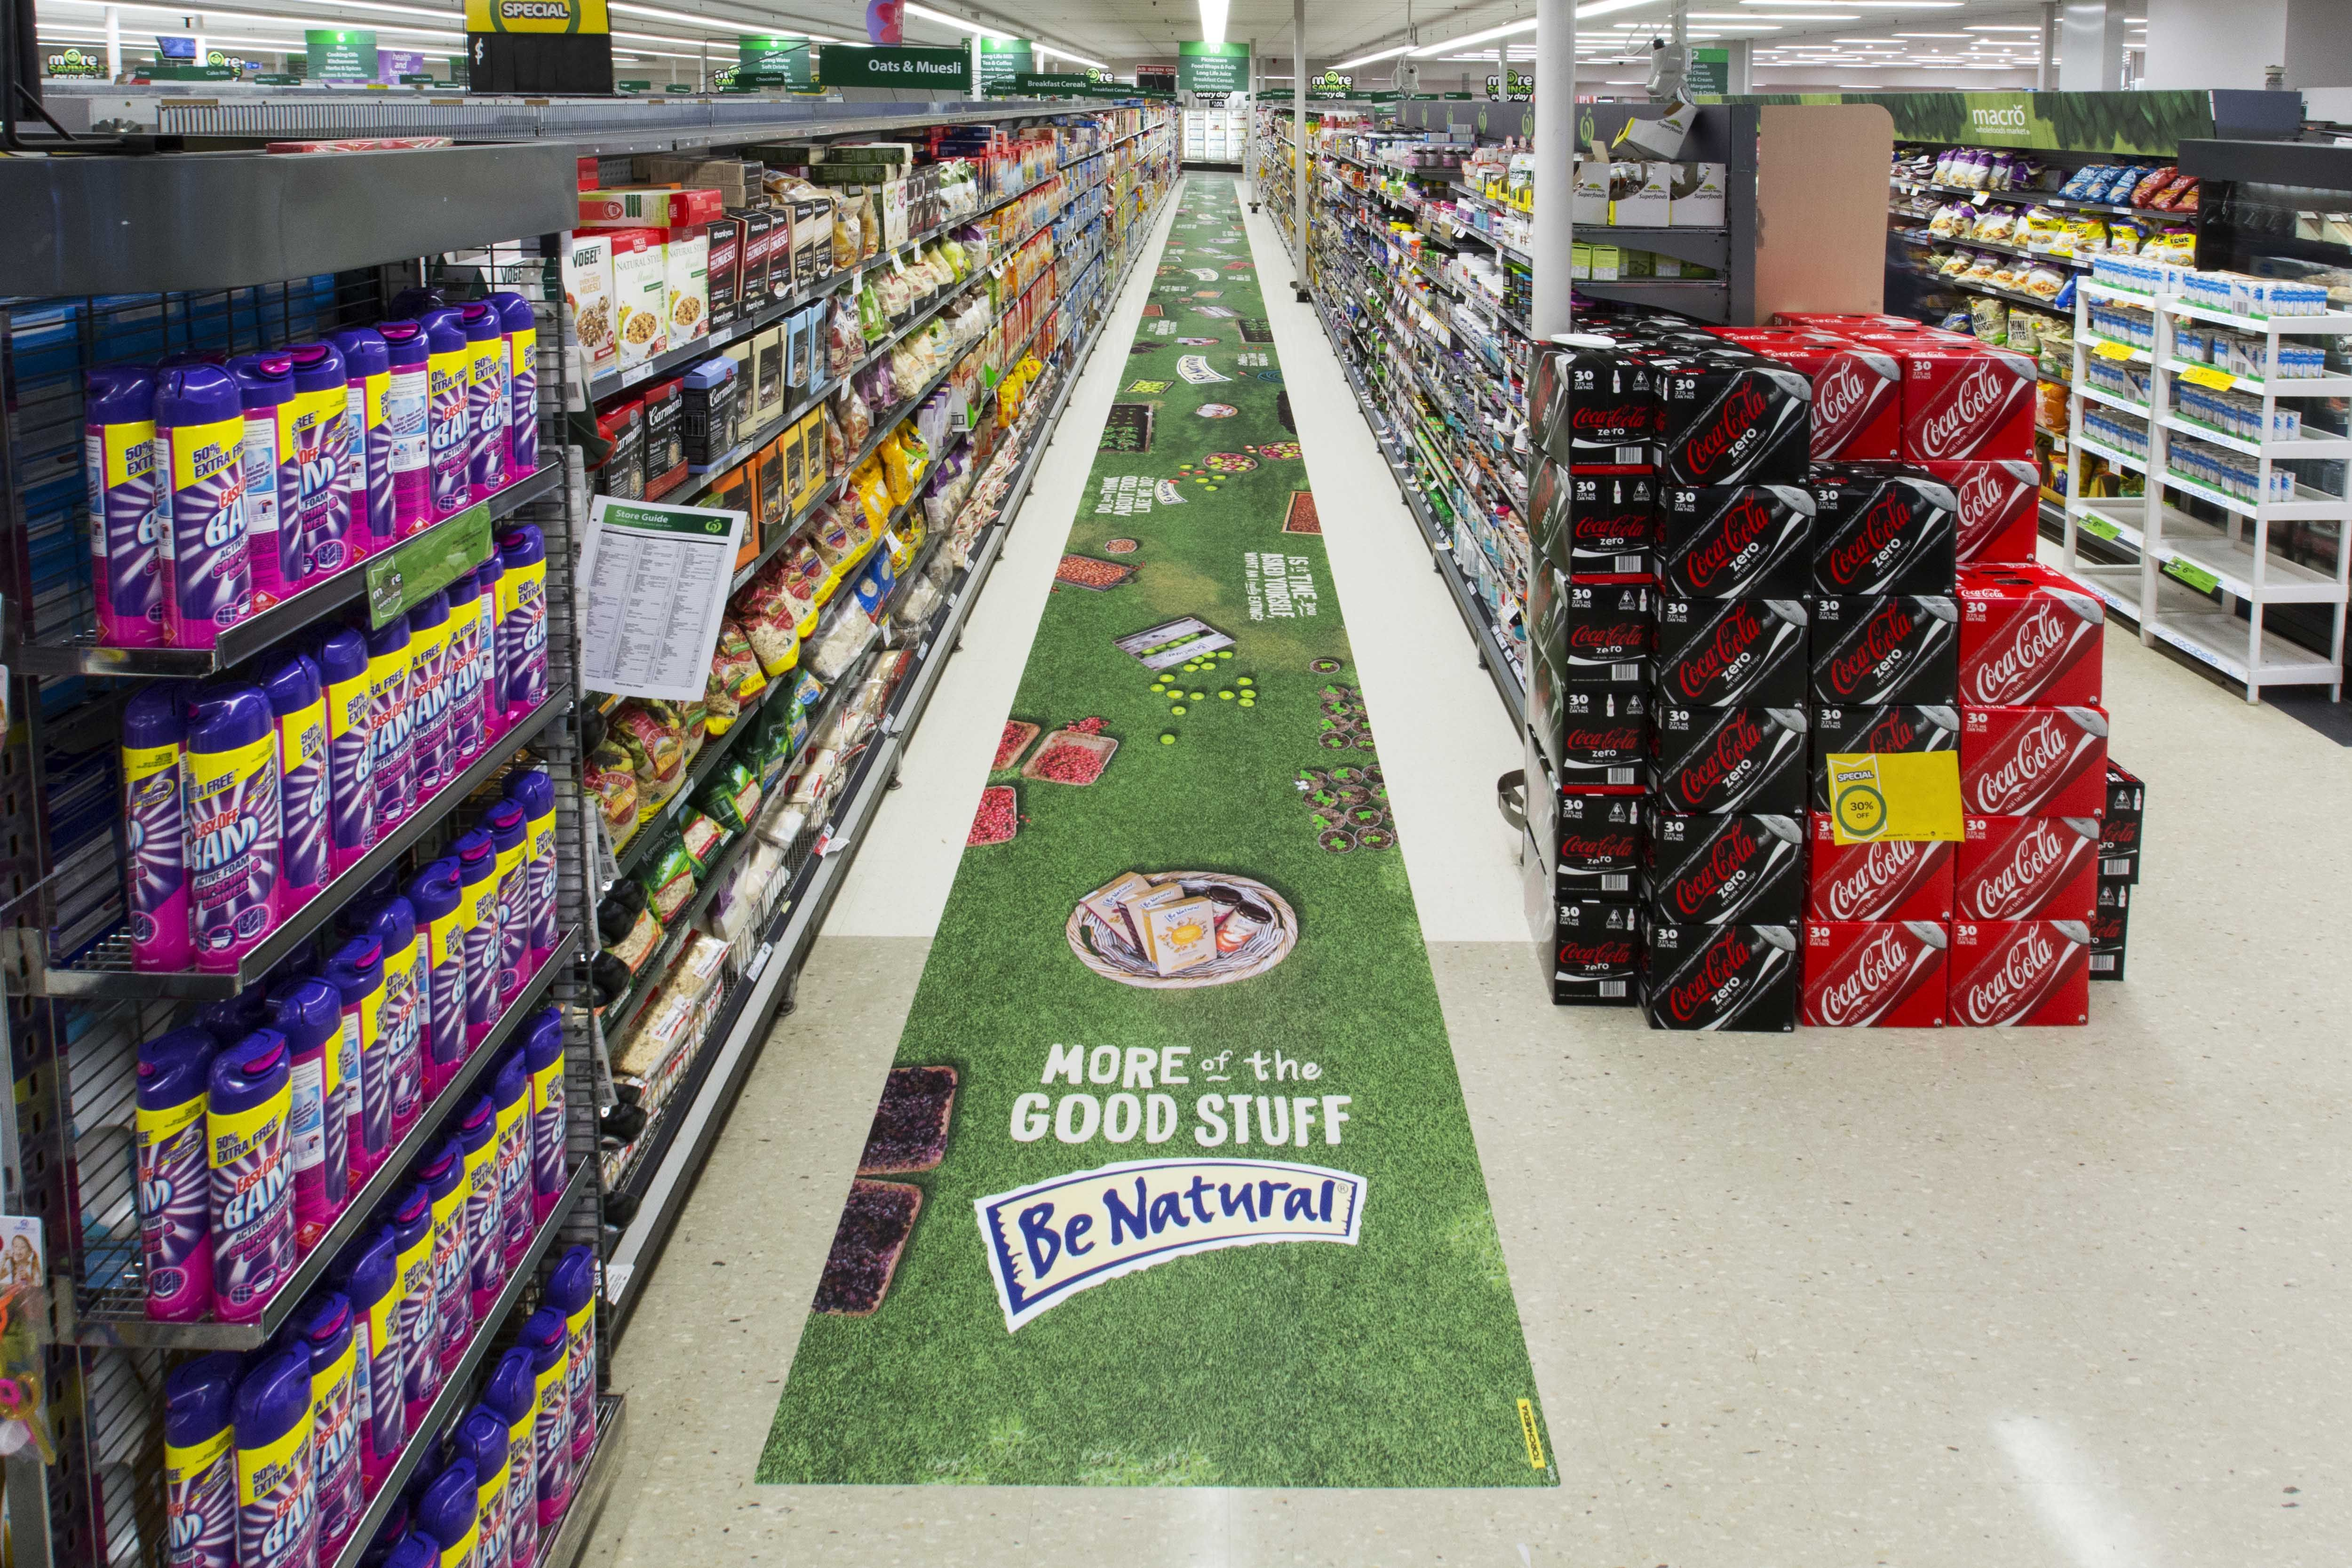 TorchMedia Rolls Out Aisle Floor Decal For Be Natural   Be Natural Is  Promoting Its Range